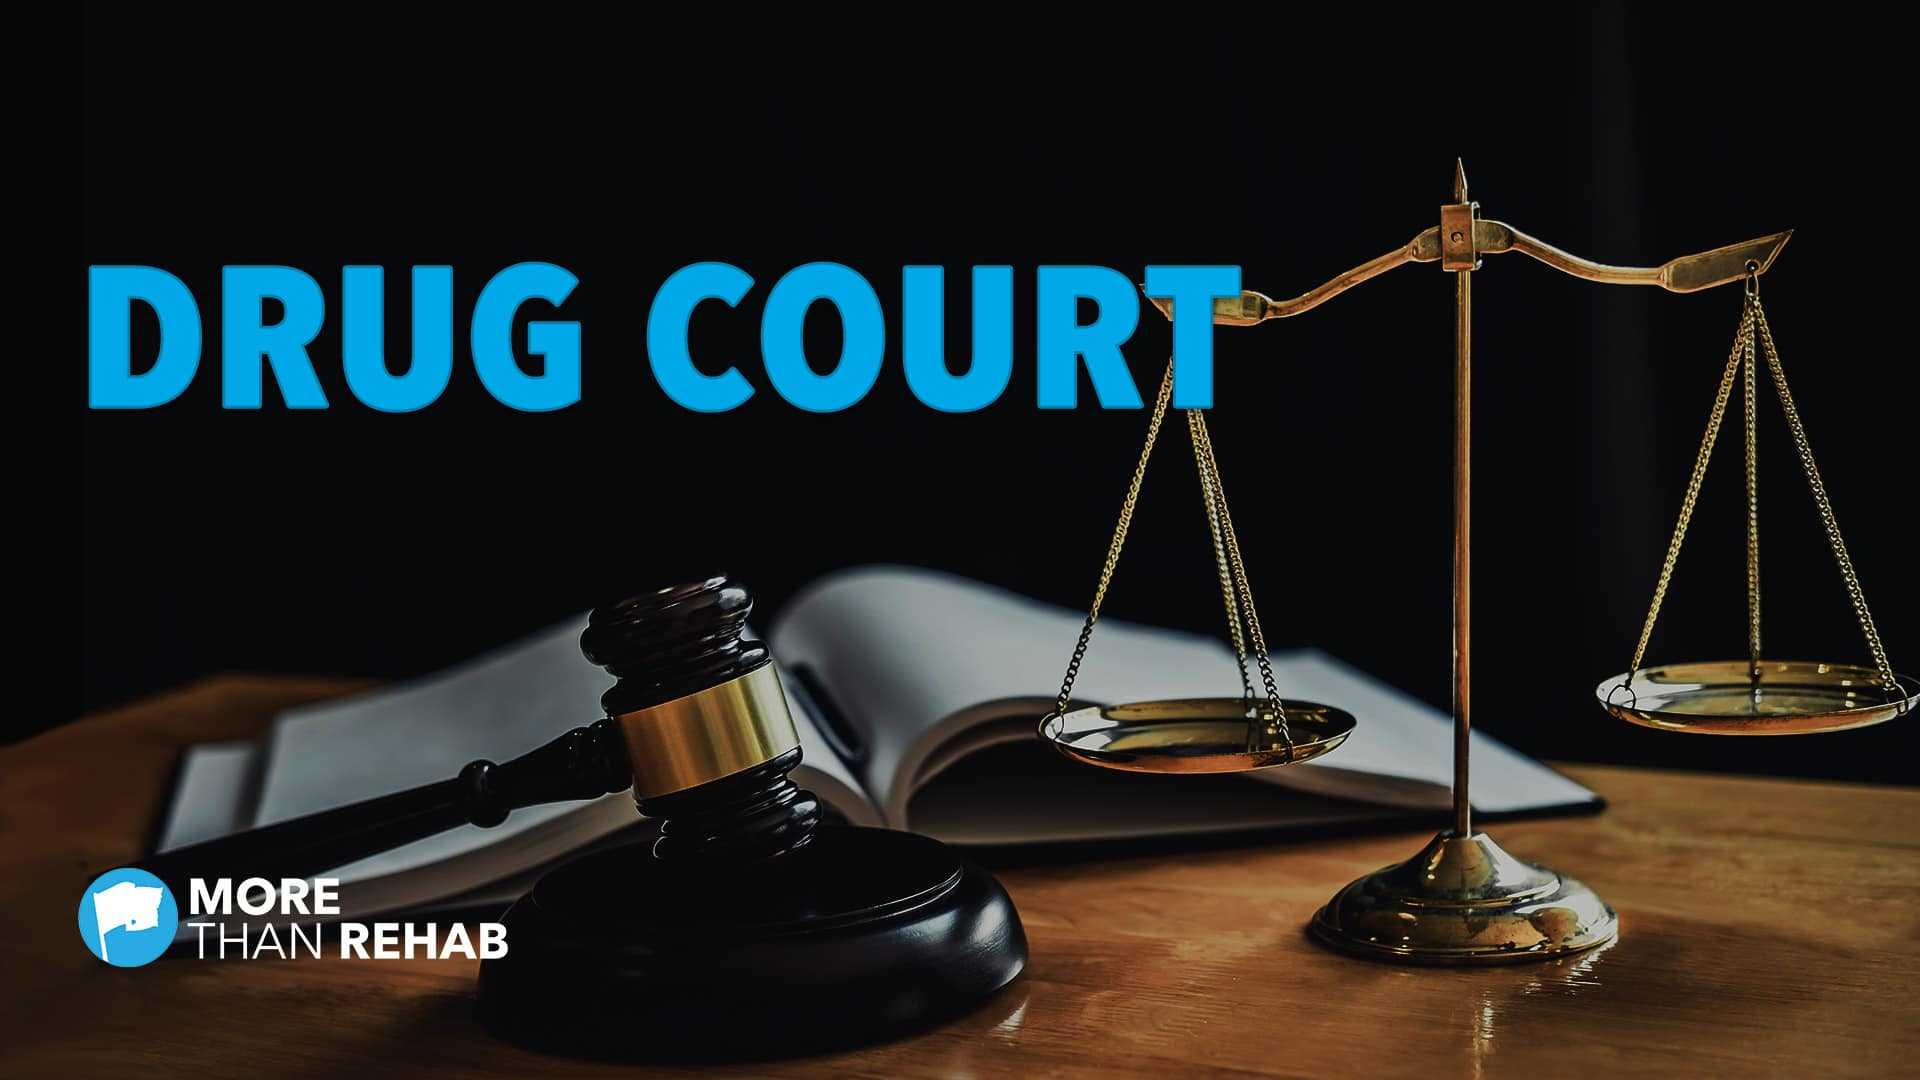 how-can-drug-court-help-addicts-recover-stay-out-of-jail-addiction-treatment-recidivism-rates-Texas-Houston-Austin-rehab